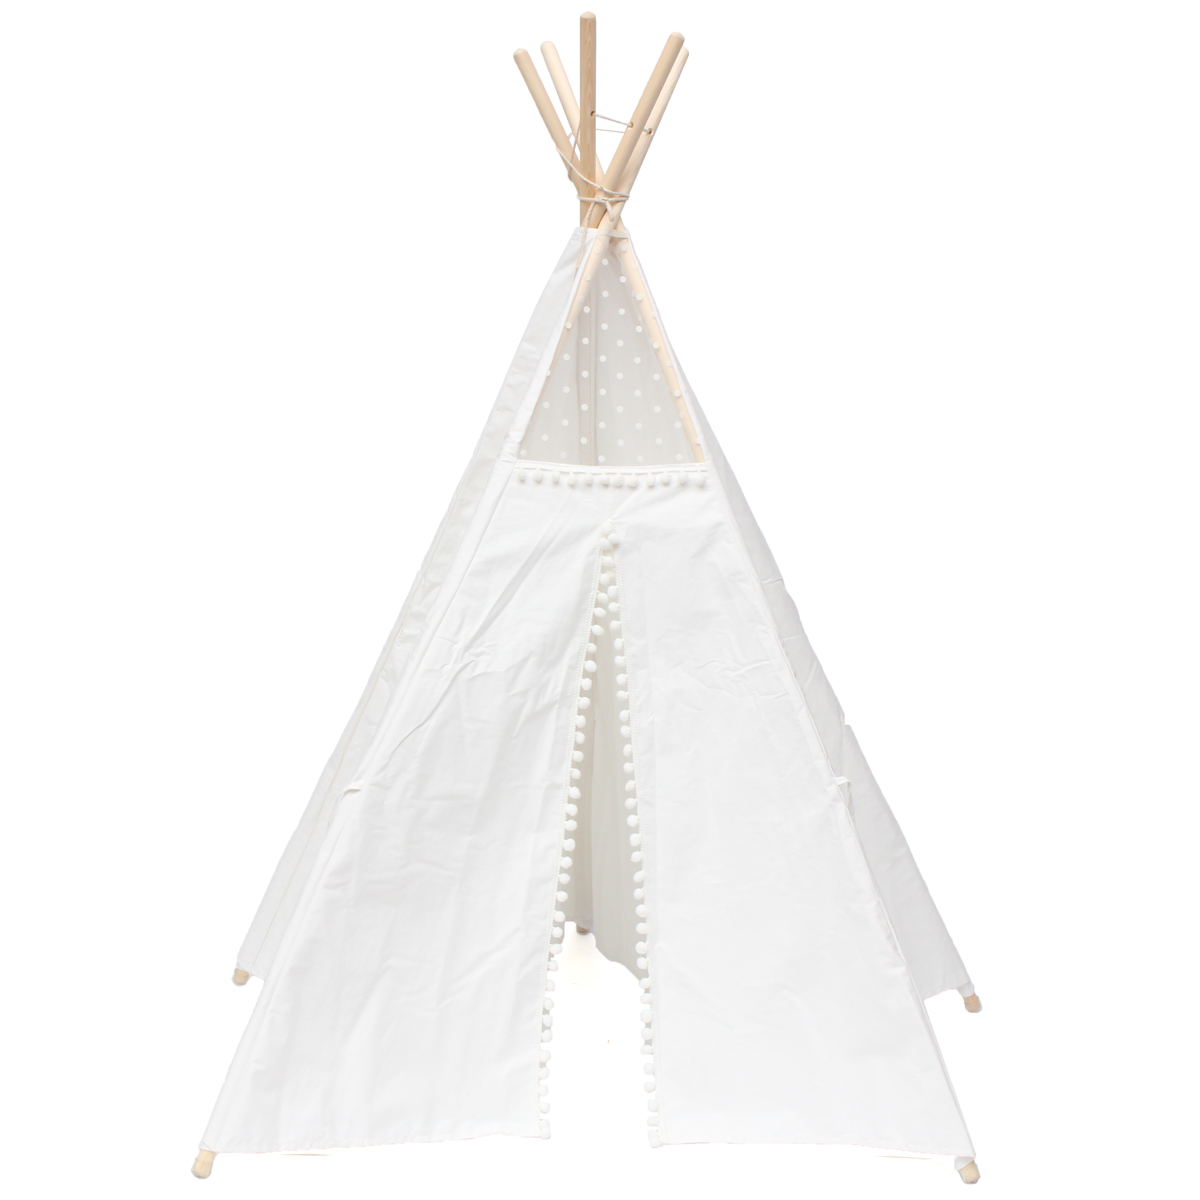 Large Cotton Canvas Original Teepee Kids Teepee With Indian Play Tent House Children Outdoor Indoor Tipi Tee Pee Tent WhiteLarge Cotton Canvas Original Teepee Kids Teepee With Indian Play Tent House Children Outdoor Indoor Tipi Tee Pee Tent White